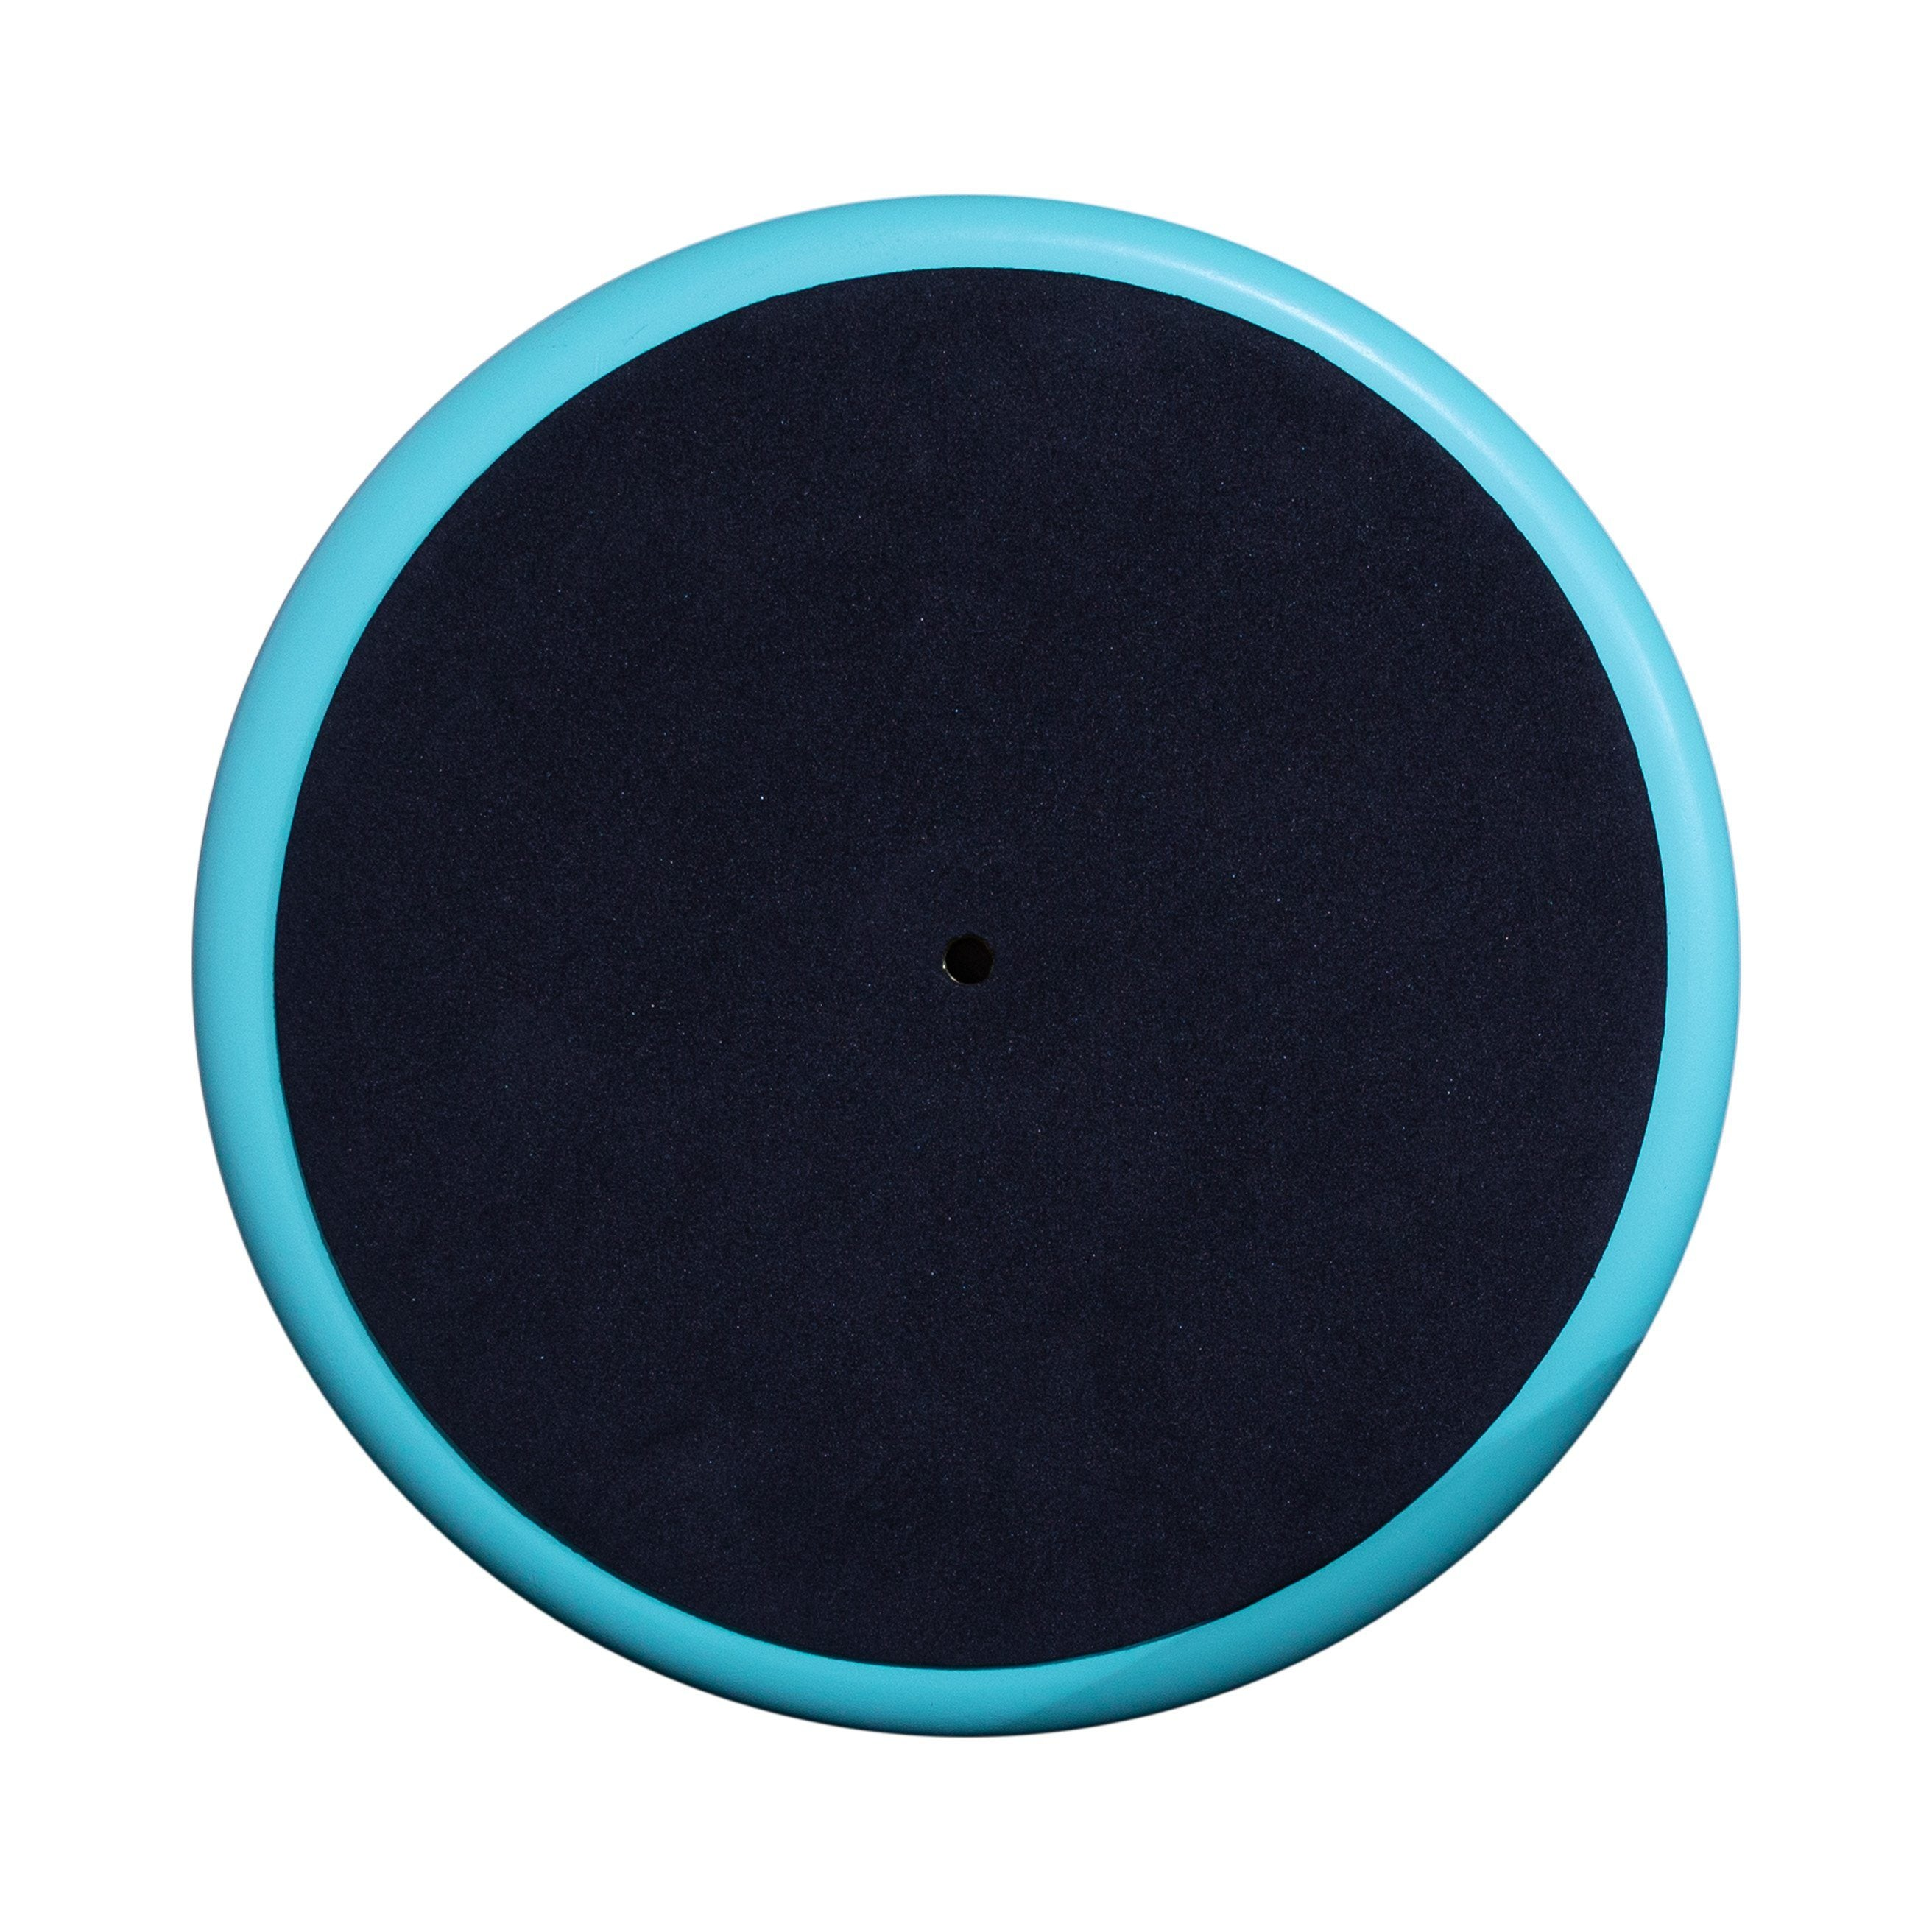 SJC Drums Official Practice Pad